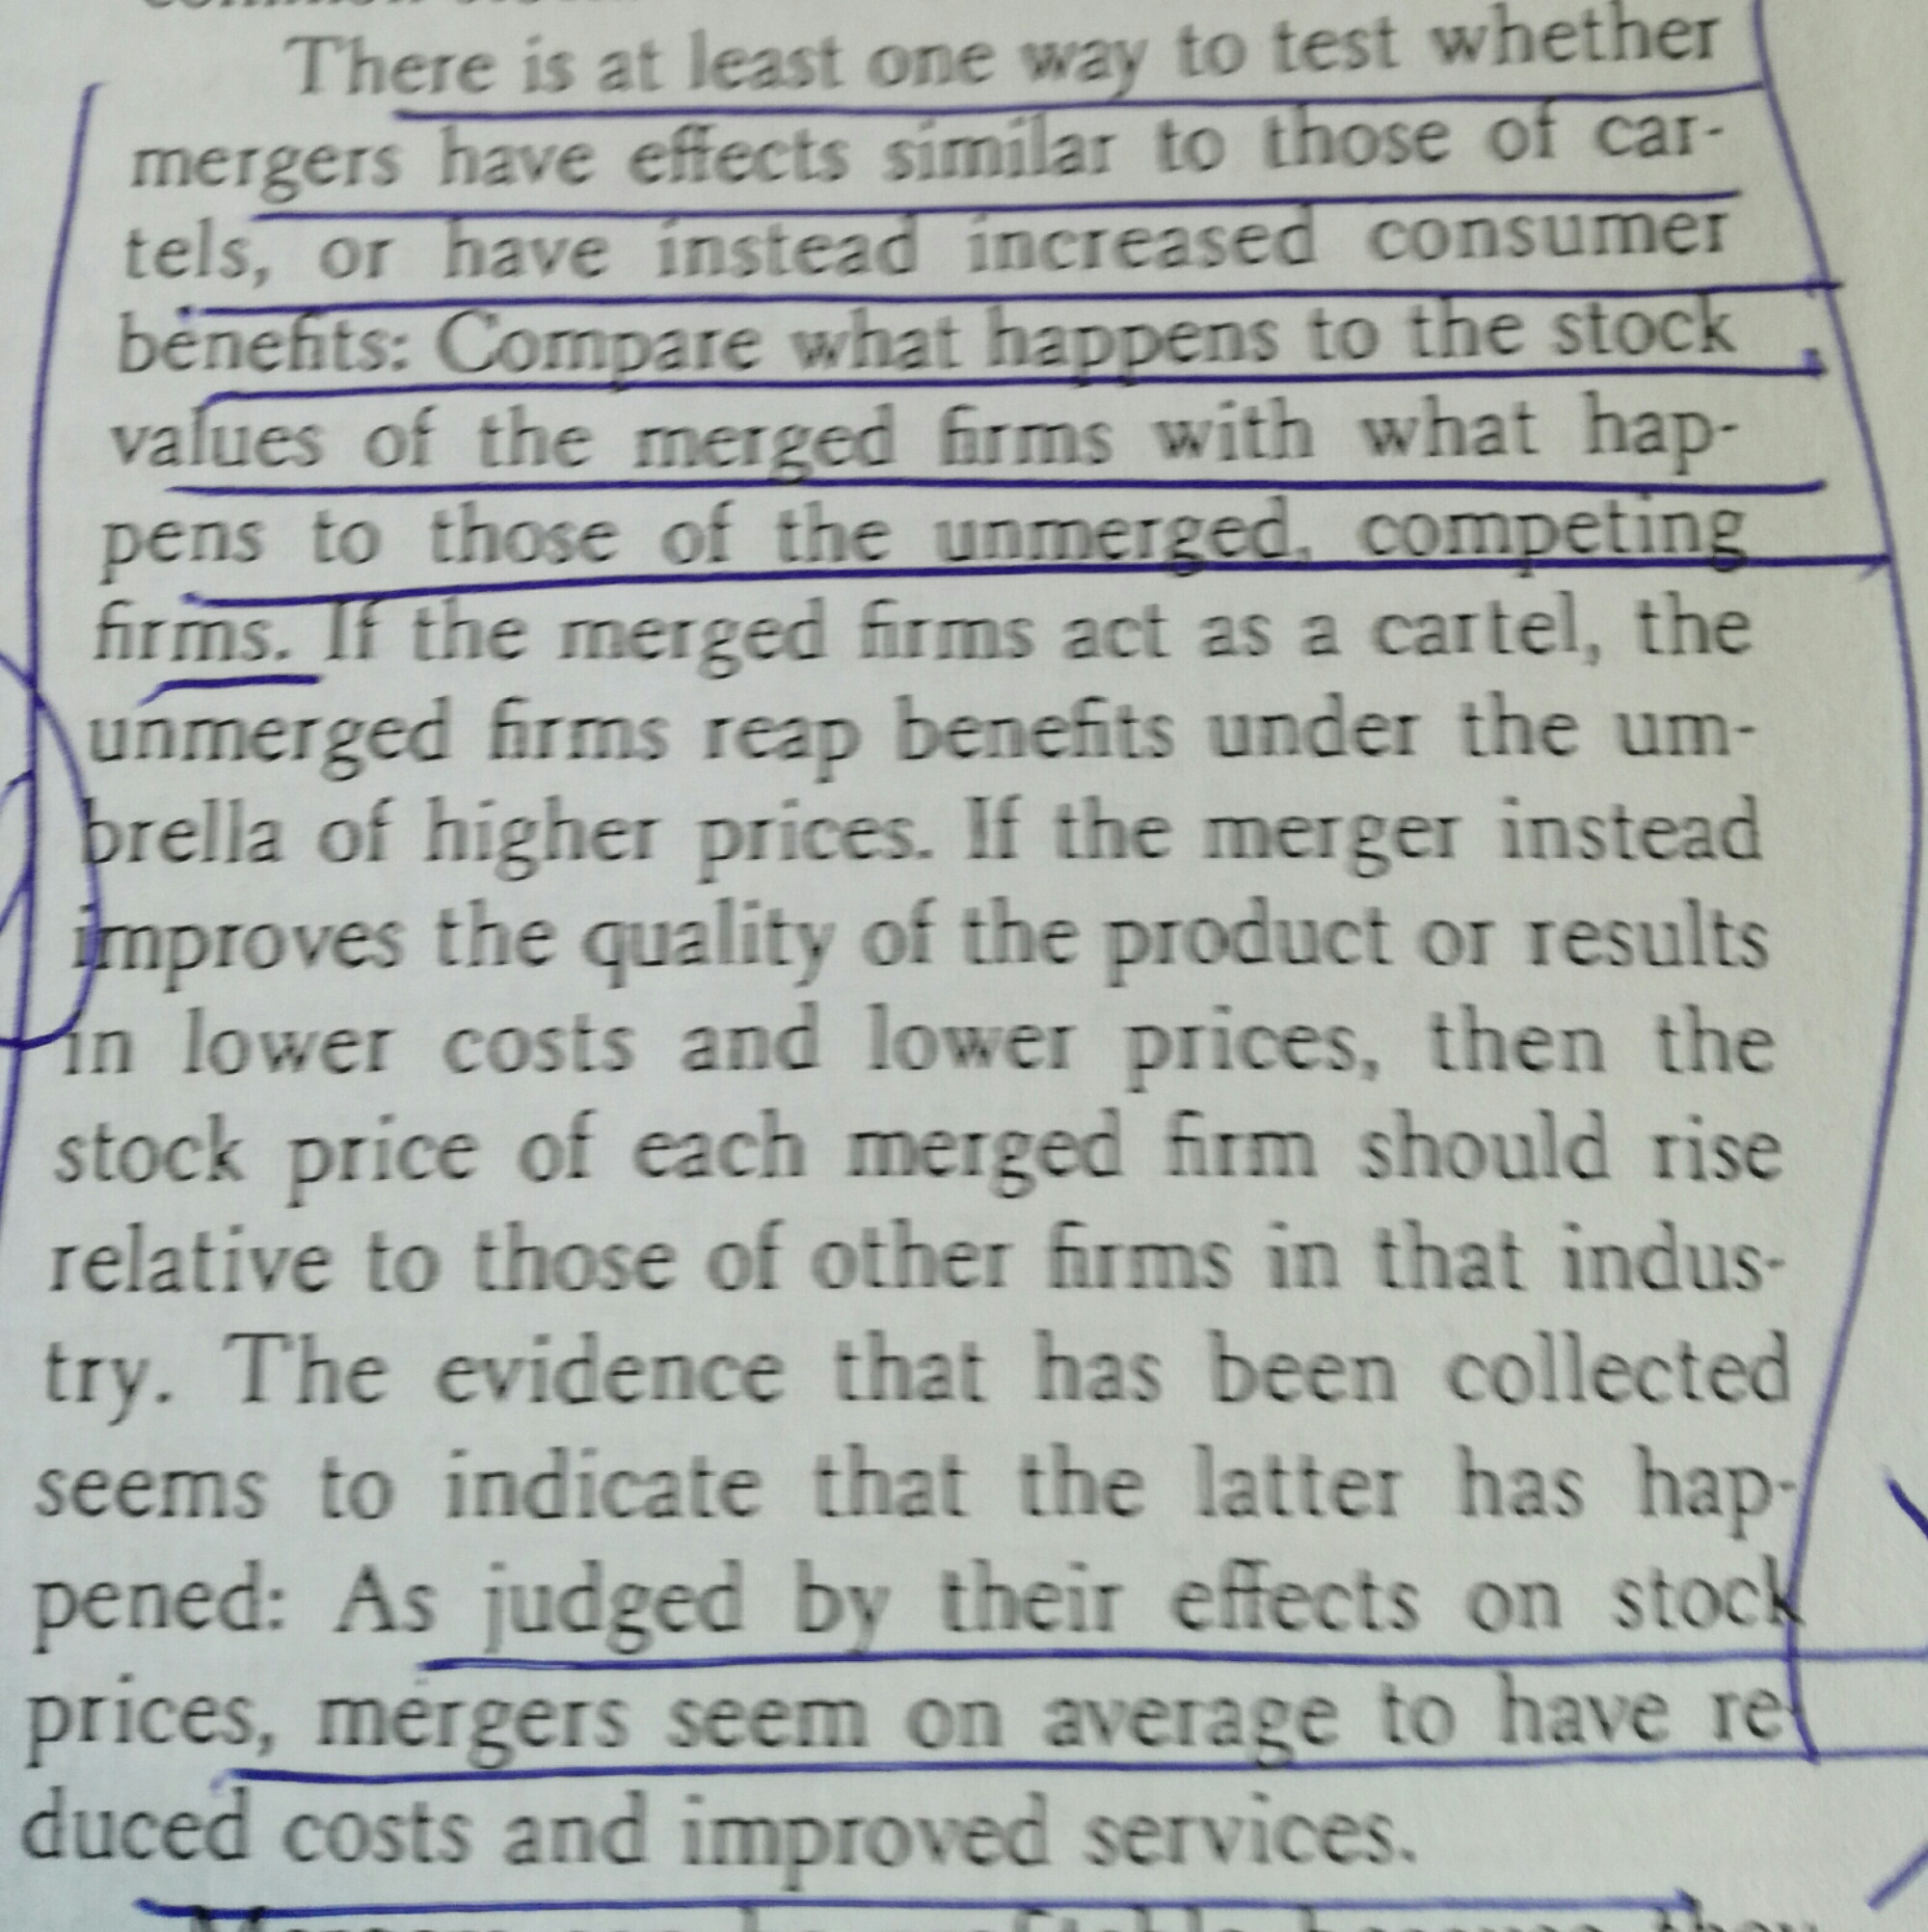 Alchian and Allen on when mergers reduce competition